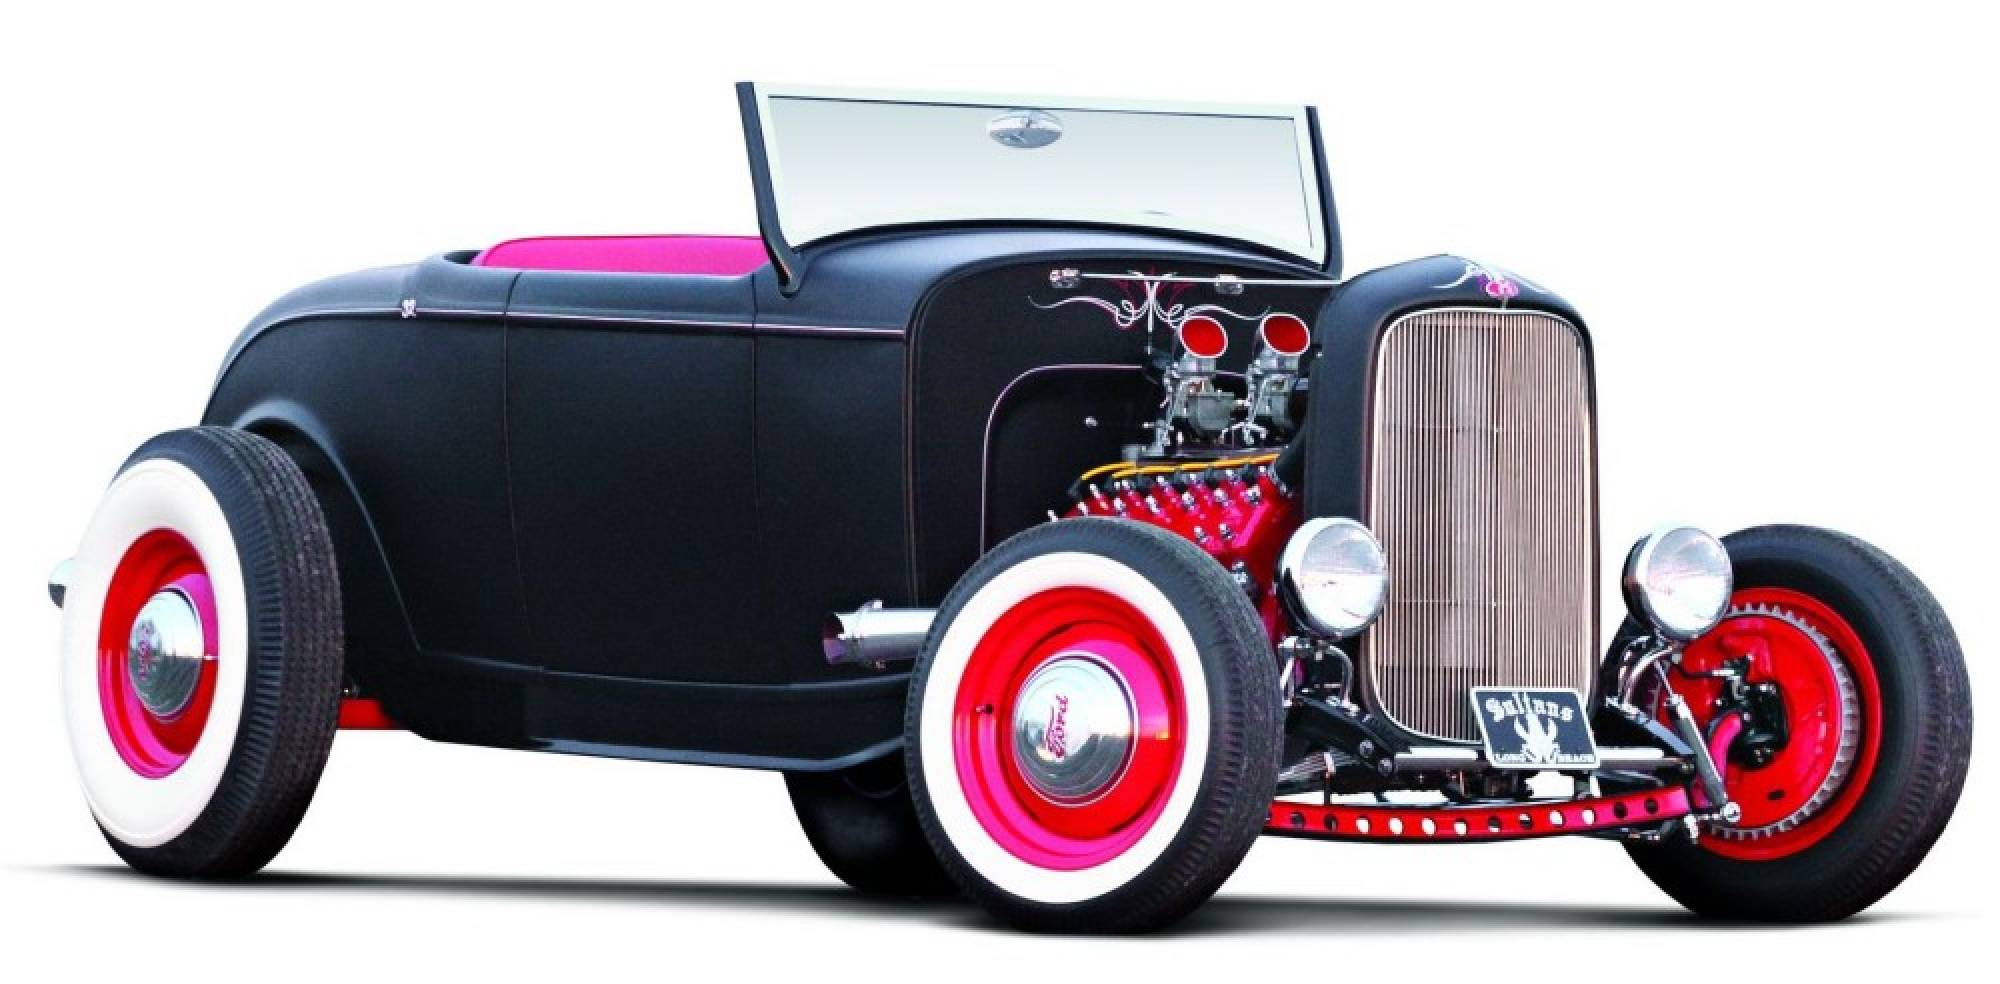 1932 Ford Roadster Backgrounds on Wallpapers Vista